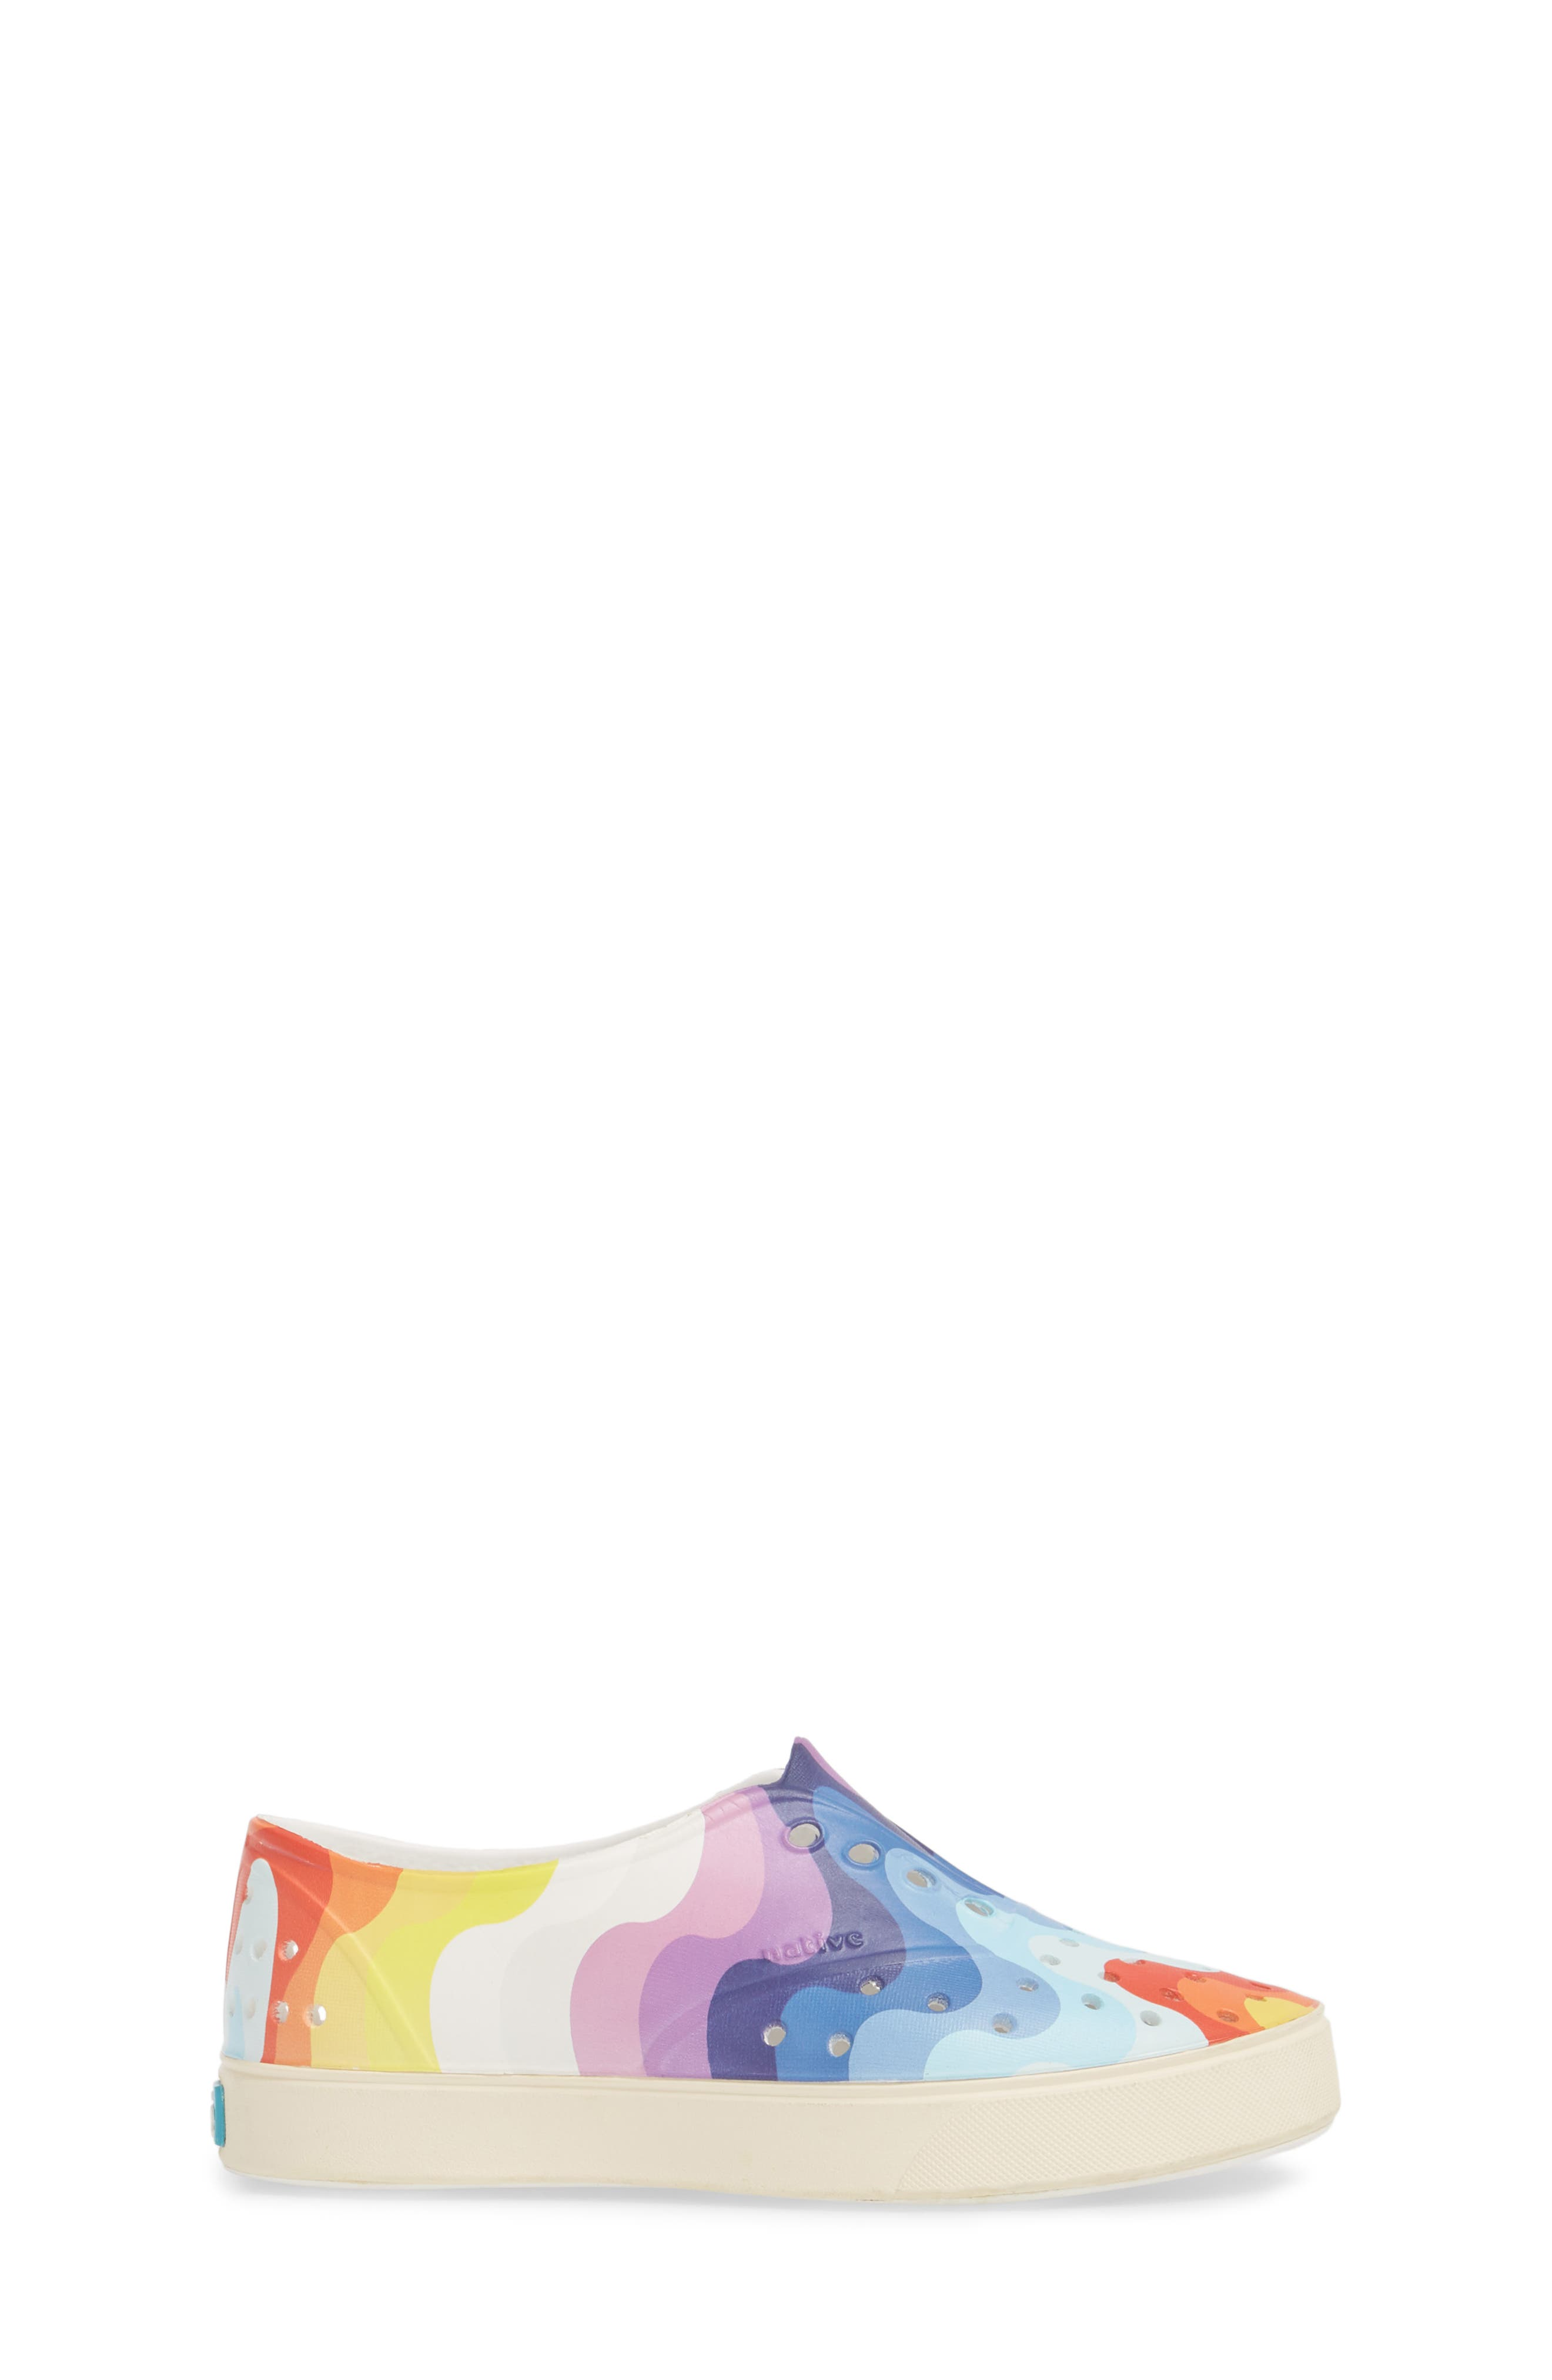 'Miller' Water Friendly Perforated Sneaker,                             Alternate thumbnail 3, color,                             SHELL WHITE/ RAINBOW WAVE